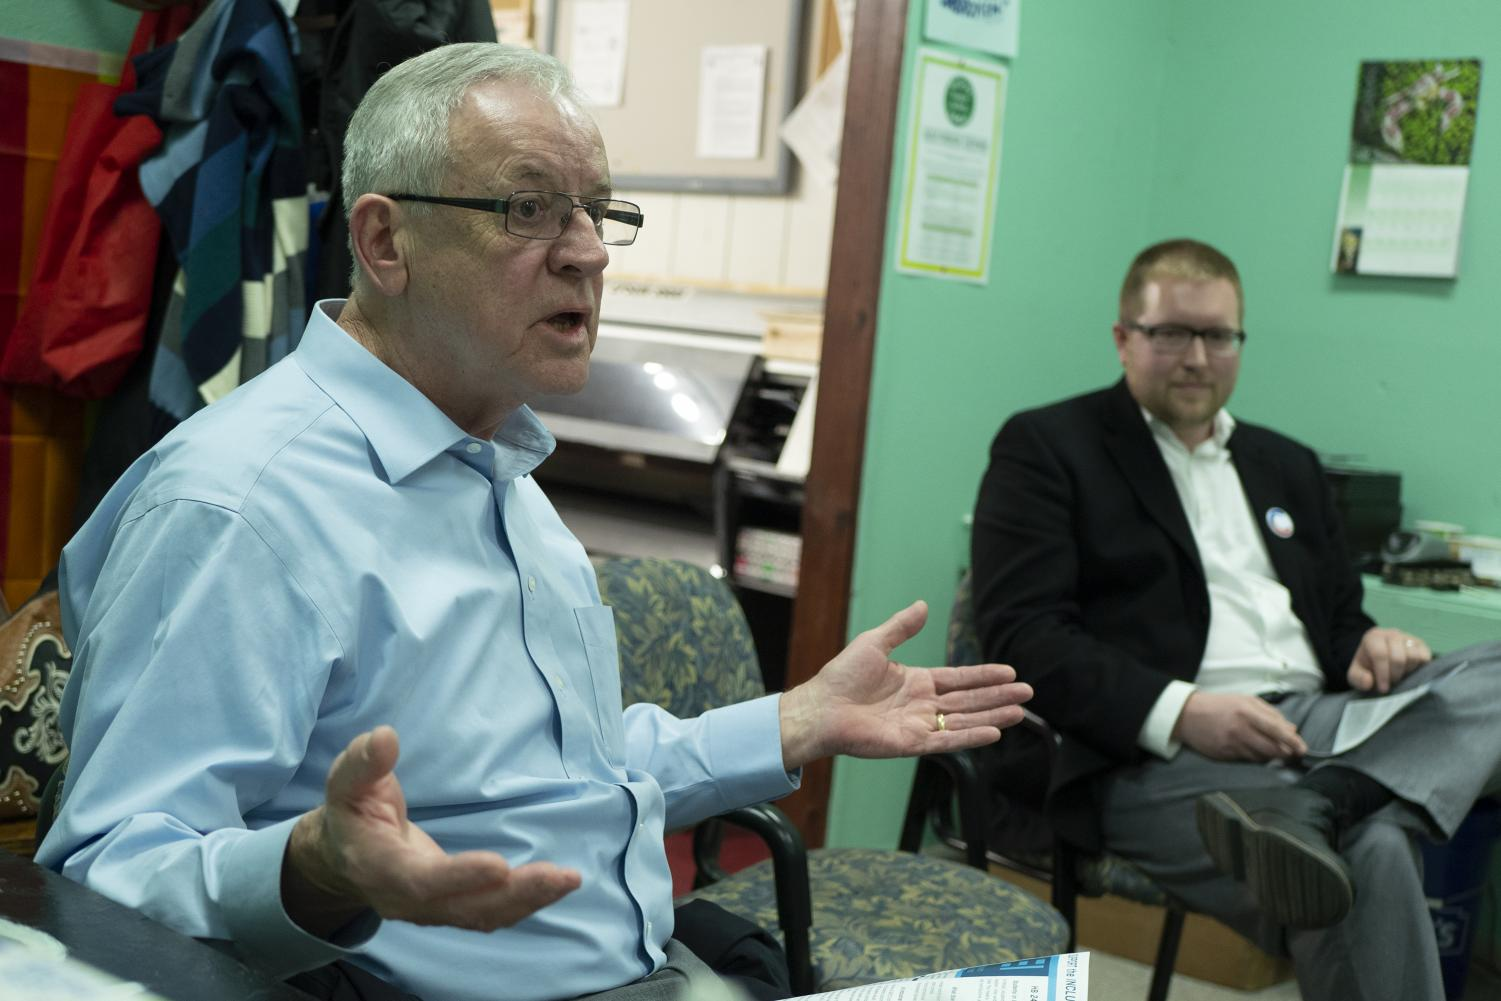 Mayor Mike Henry addresses a question alongside mayoral candidate Nathan Colombo on March 28, 2019, at the Mayoral LGBTQ Open Forum in the Center of Empowerment and Justice.